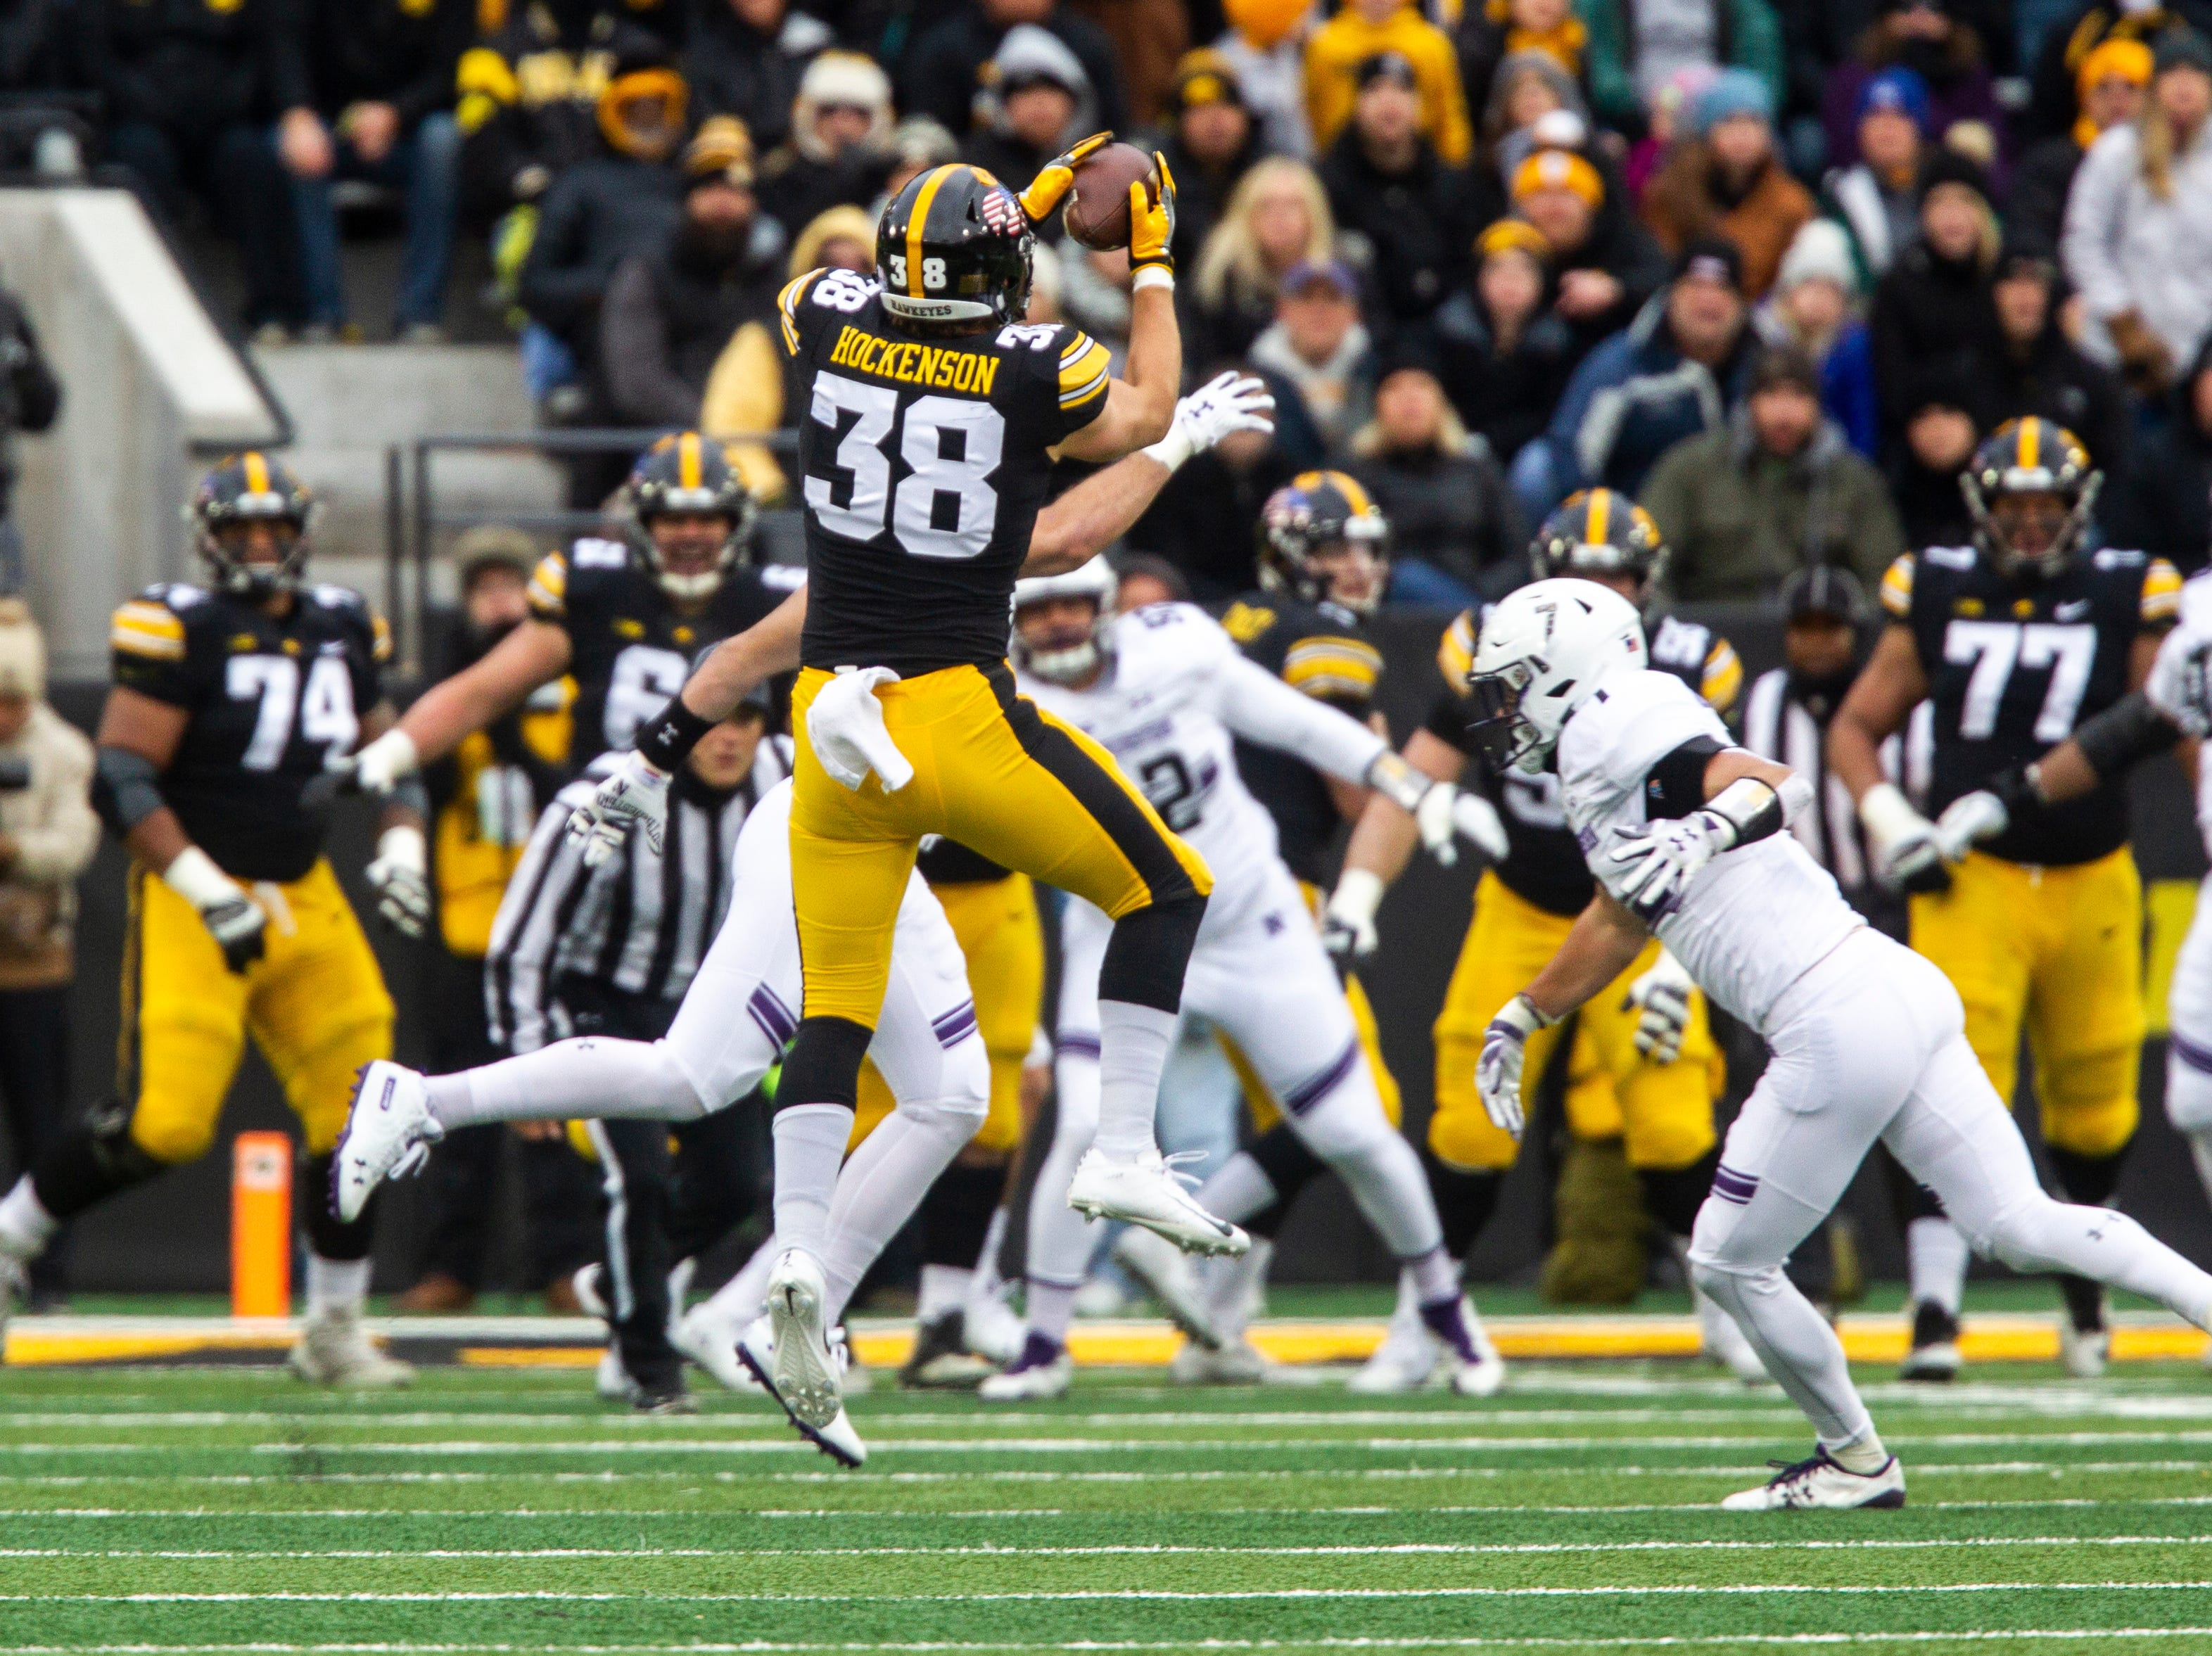 Iowa tight end T.J. Hockenson (38) catches a pass during a Big Ten Conference football game on Saturday, Nov. 10, 2018, at Kinnick Stadium in Iowa City.